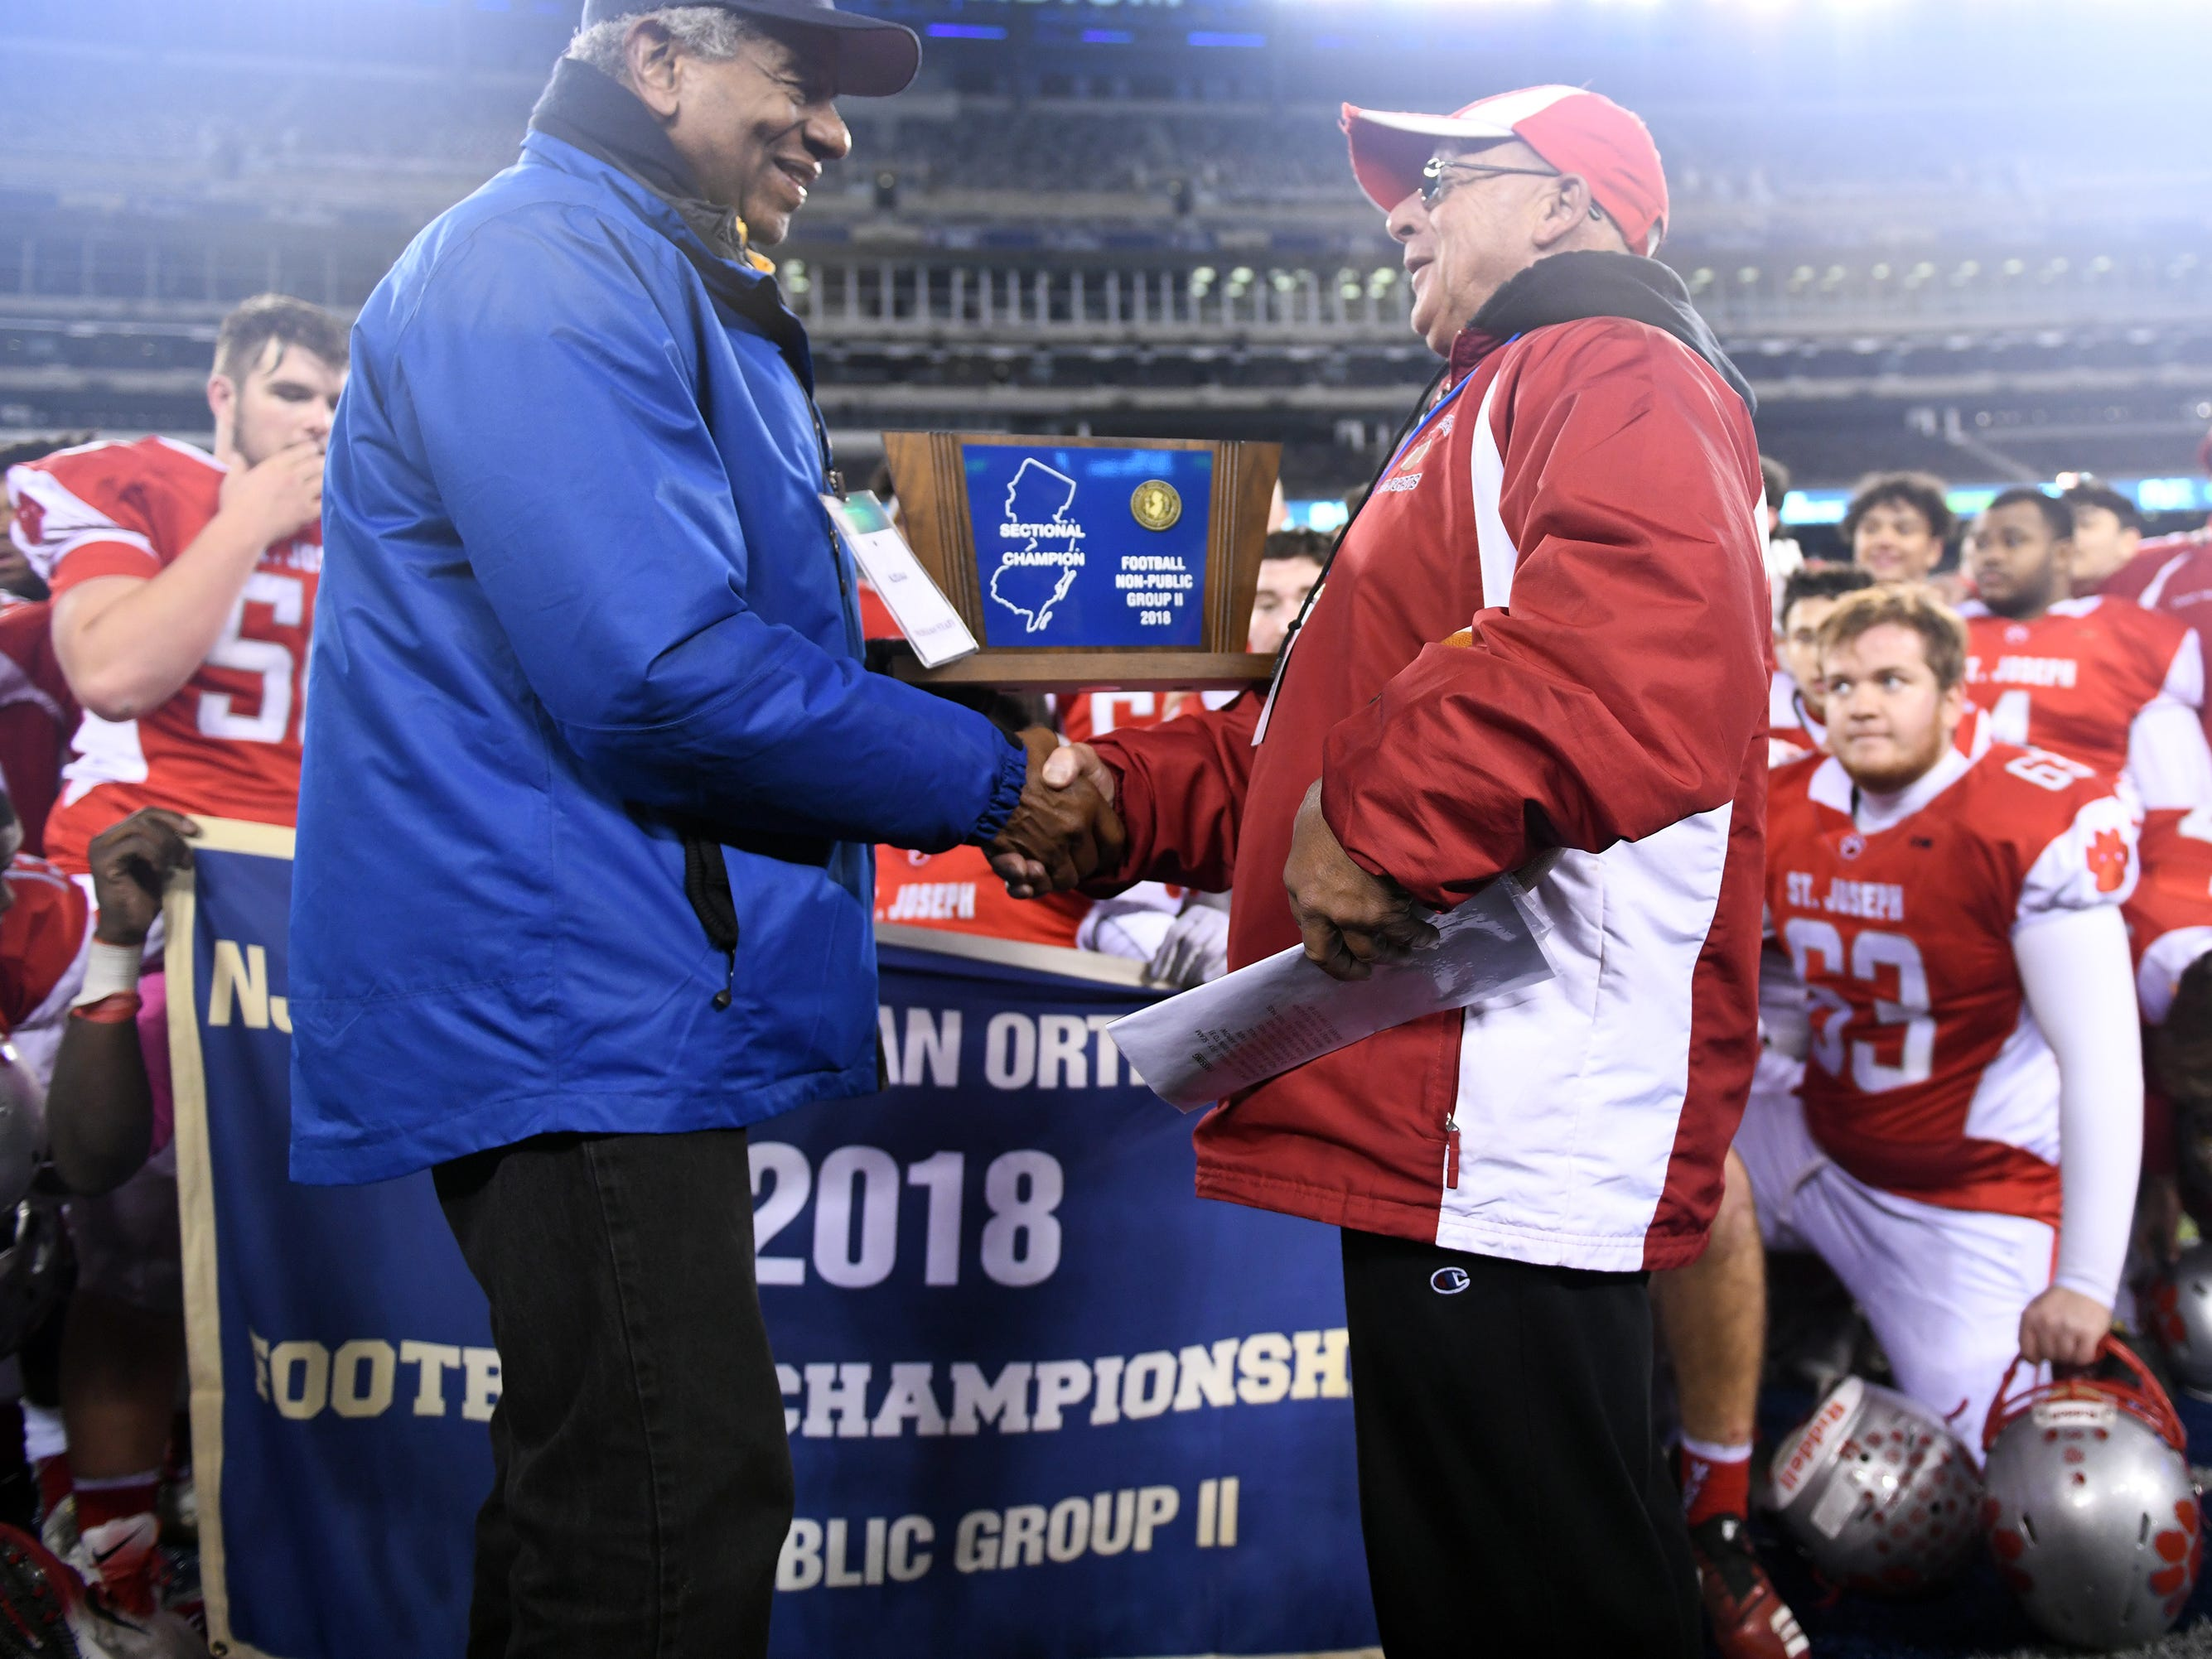 St. Joseph coach Paul Sacco Jr. (right) accepts the Non-Public 2 state championship trophy after beating Holy Spirit at MetLife Stadium on Friday, November 30, 2018.